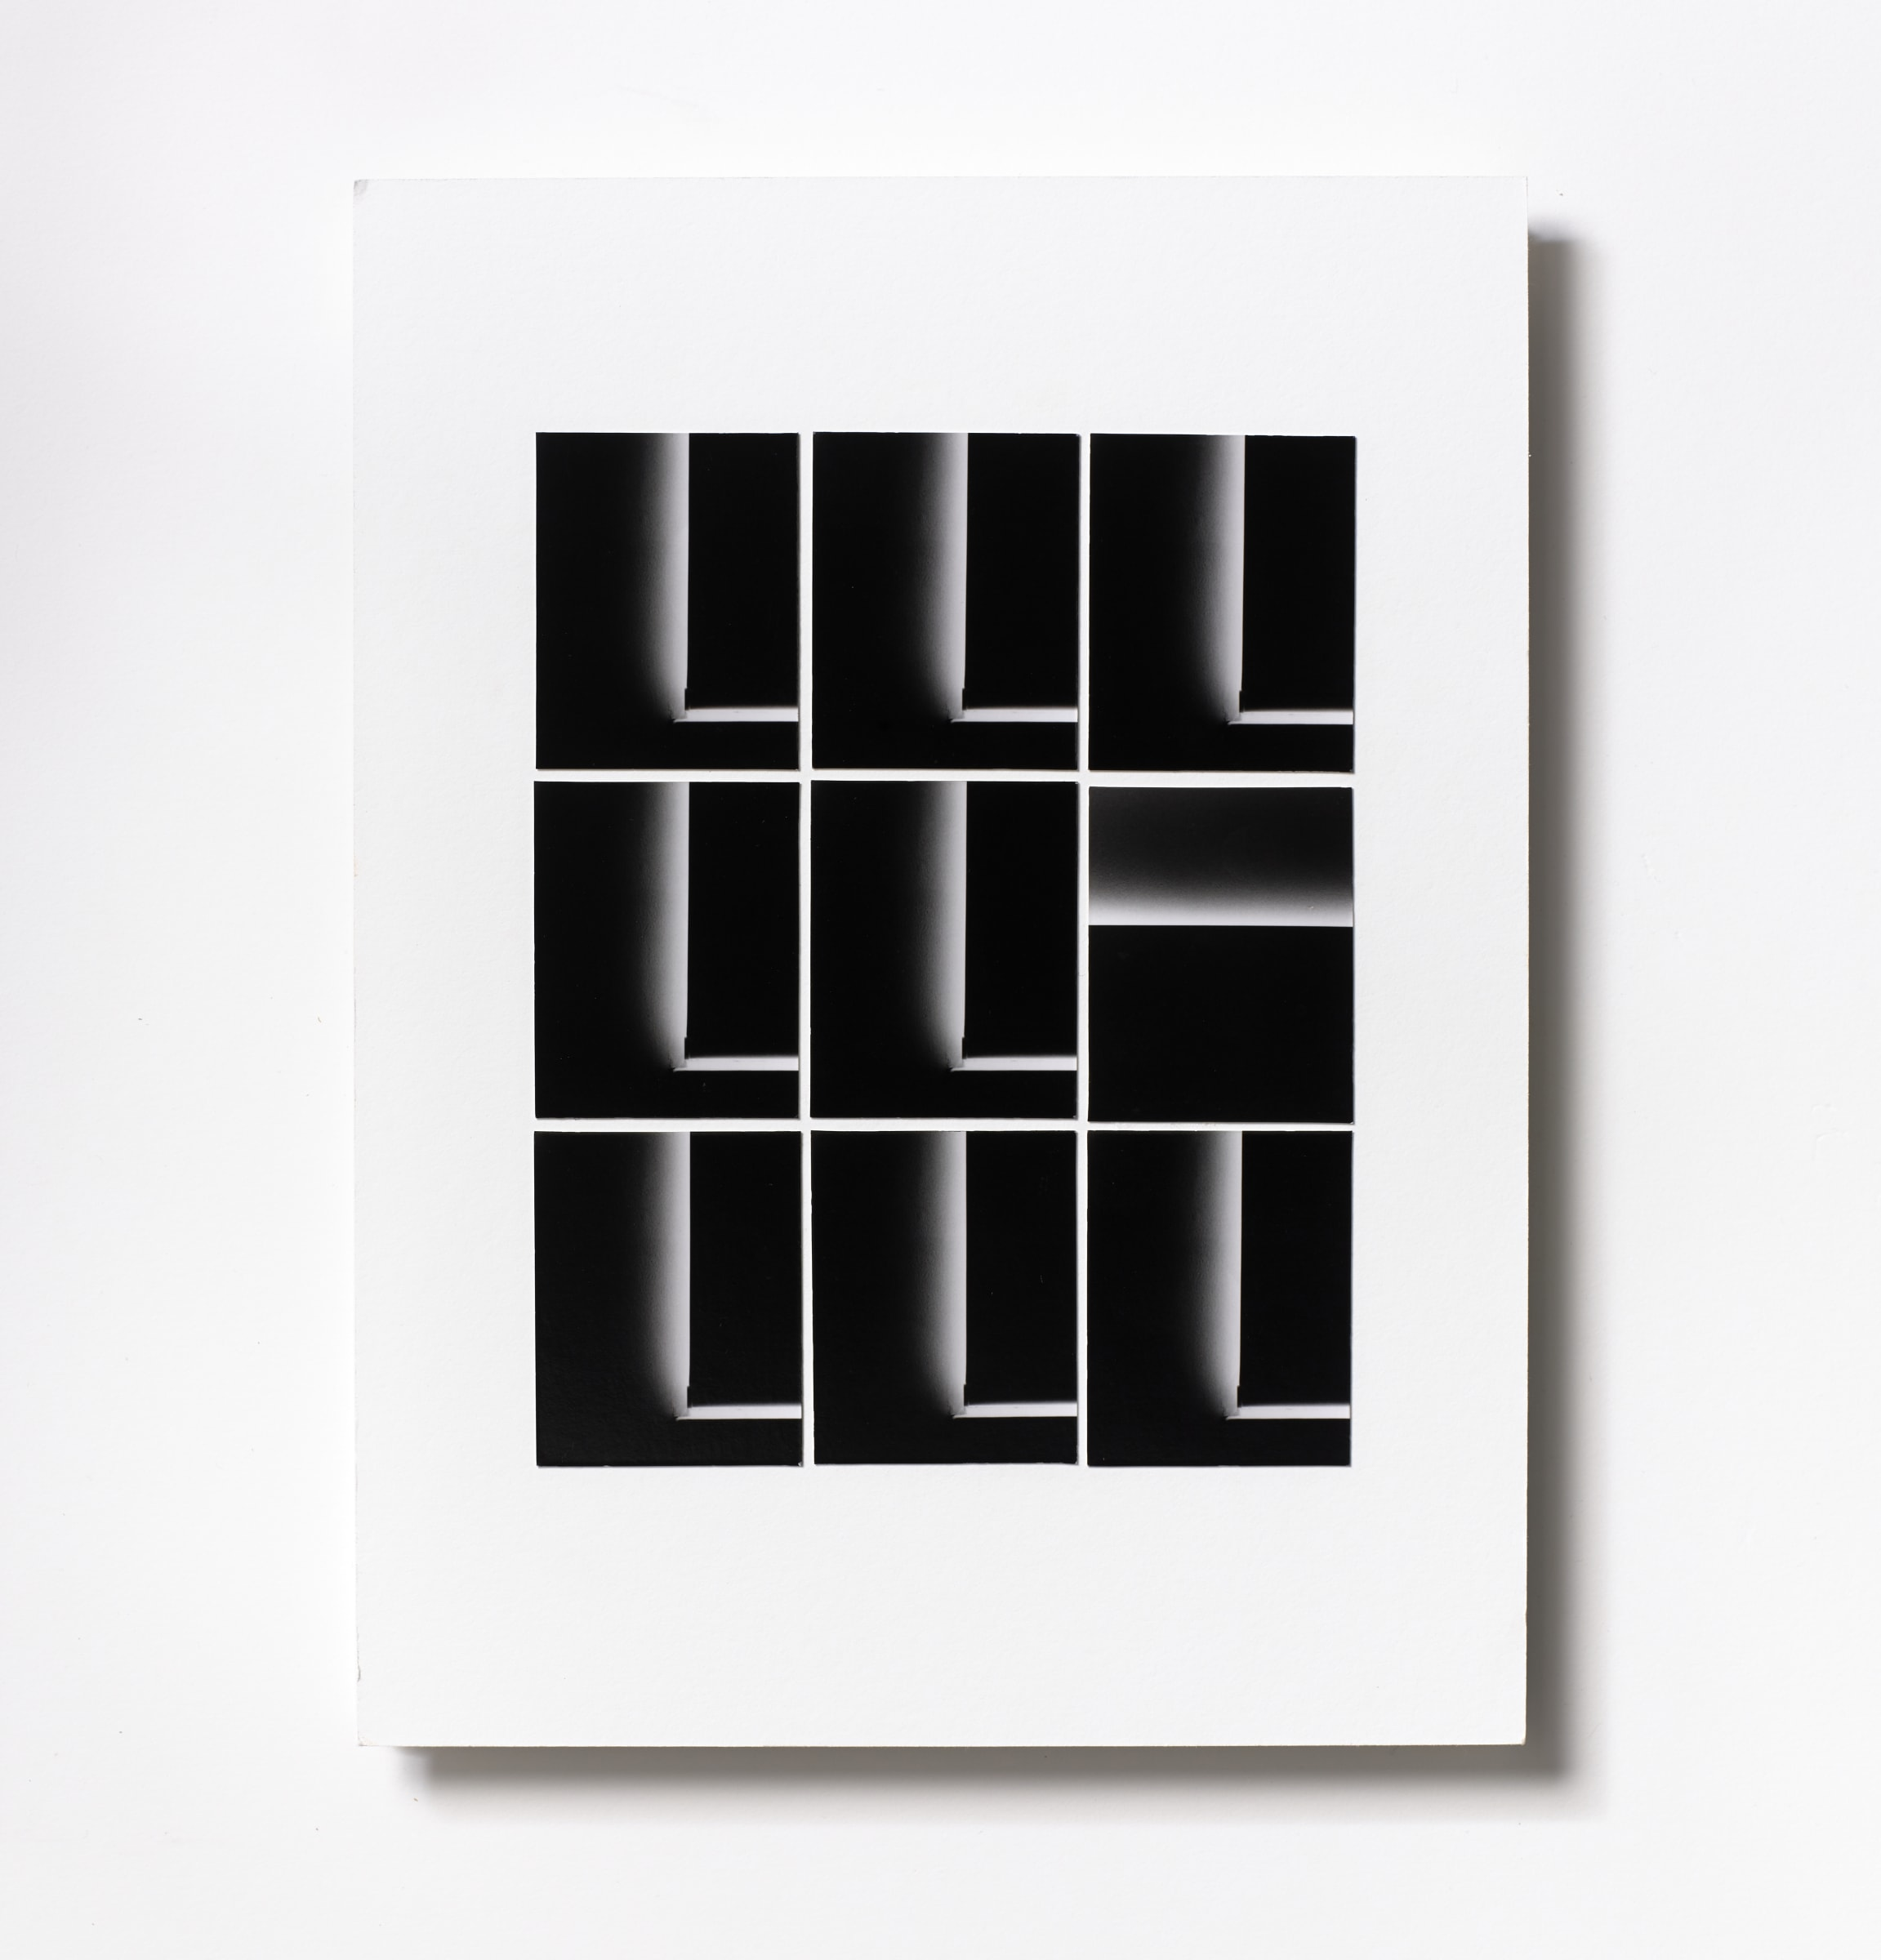 """<span class=""""link fancybox-details-link""""><a href=""""/content/feature/218/artworks550/"""">View Detail Page</a></span><div class=""""medium"""">Silver Gelatin Photogram Print Collage of nine handmade 2.5"""" x 2"""" silver gelatin prints from film negatives on a 12 x 9 inch 8-ply museum board<br /> Print only<br /> Unique</div> <div class=""""dimensions"""">30.5 x 22.9 cm<br /> 12 x 9 in</div>"""